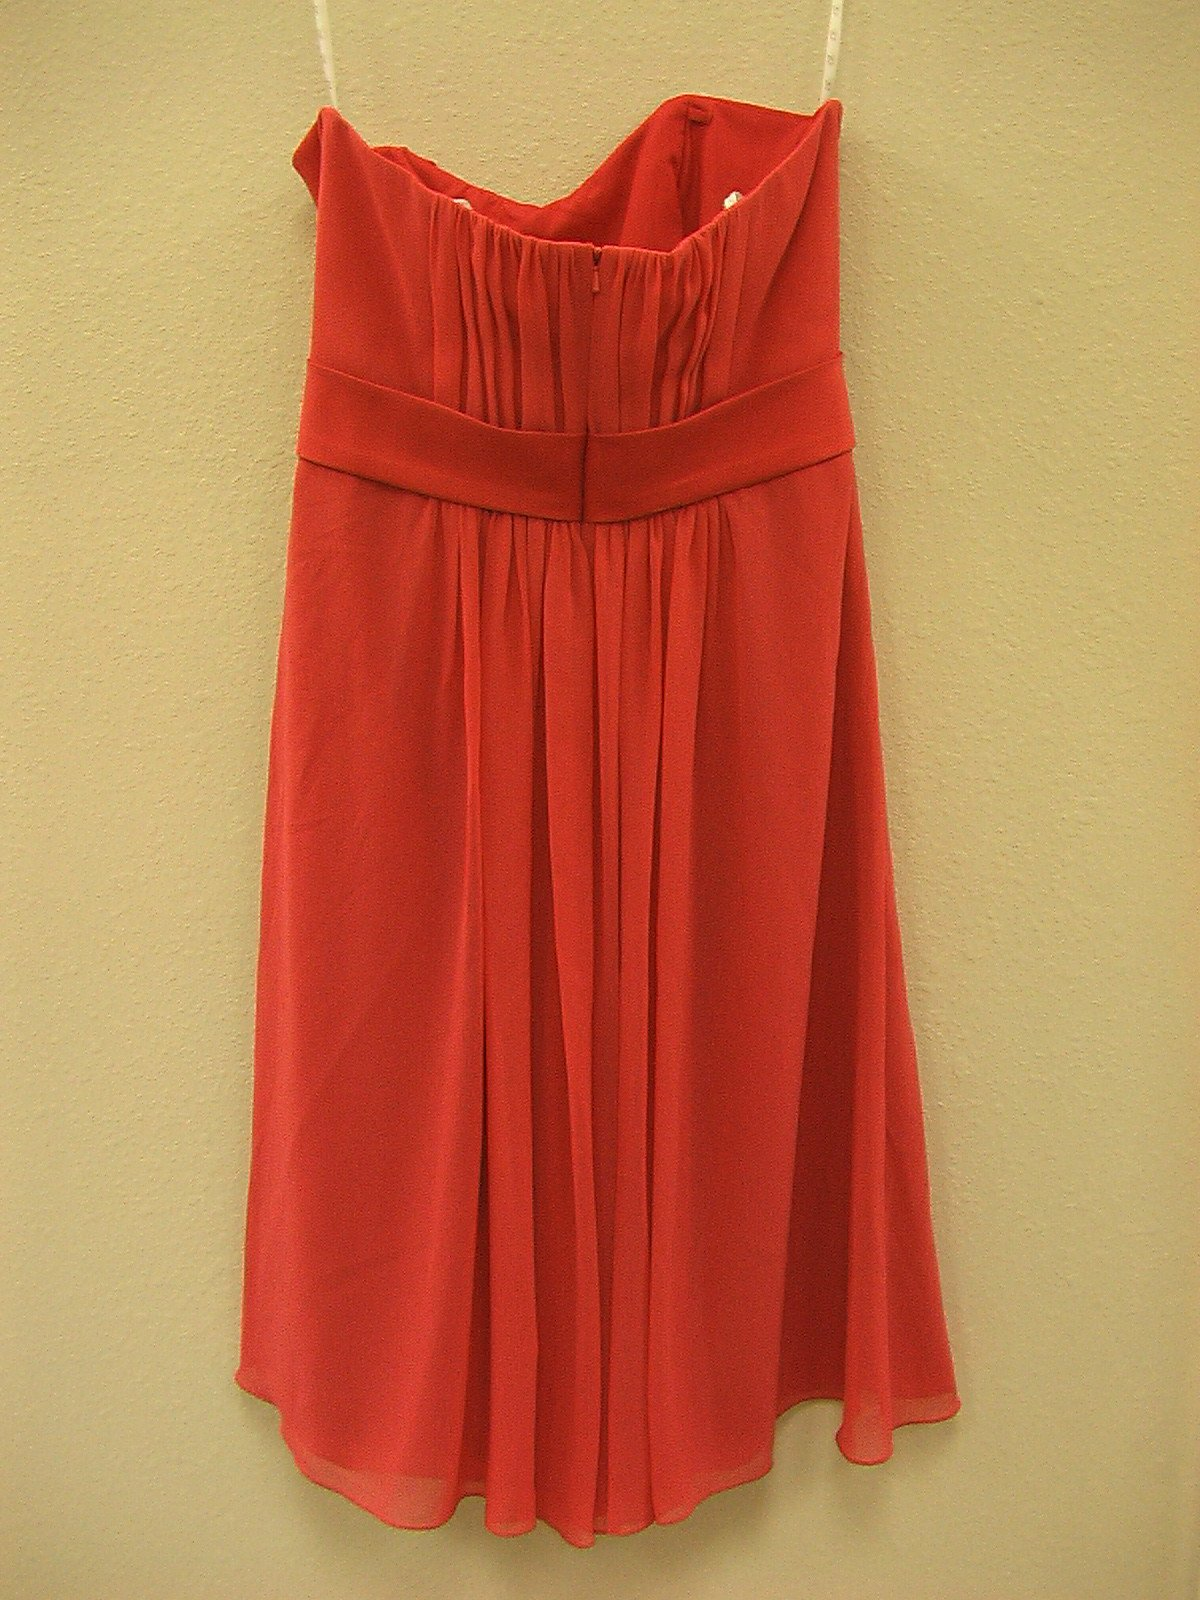 Jasmine B2 B3040 Peony size 12 In Stock Bridesmaid Dress - Tom's Bridal